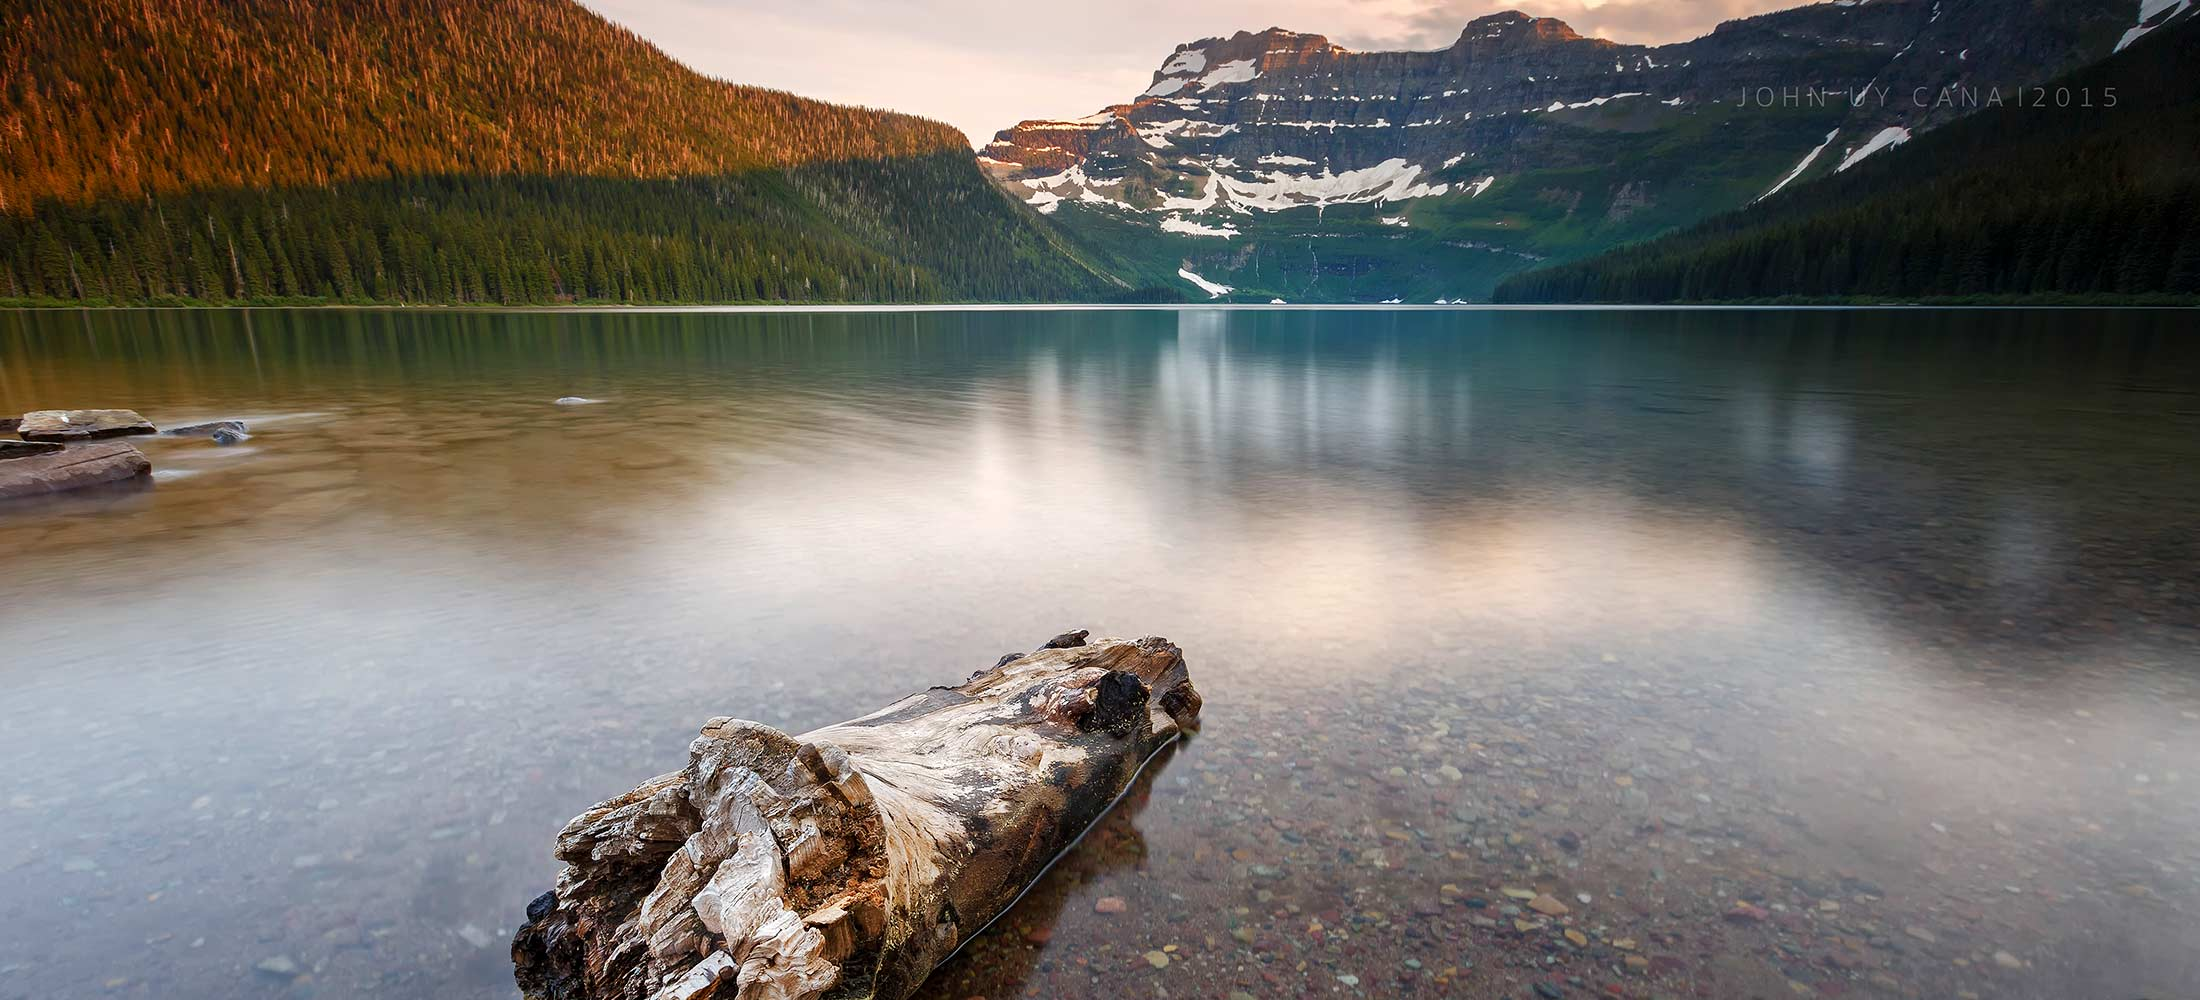 A photo of beautiful Waterton Lakes National Park from John Uy Cana.